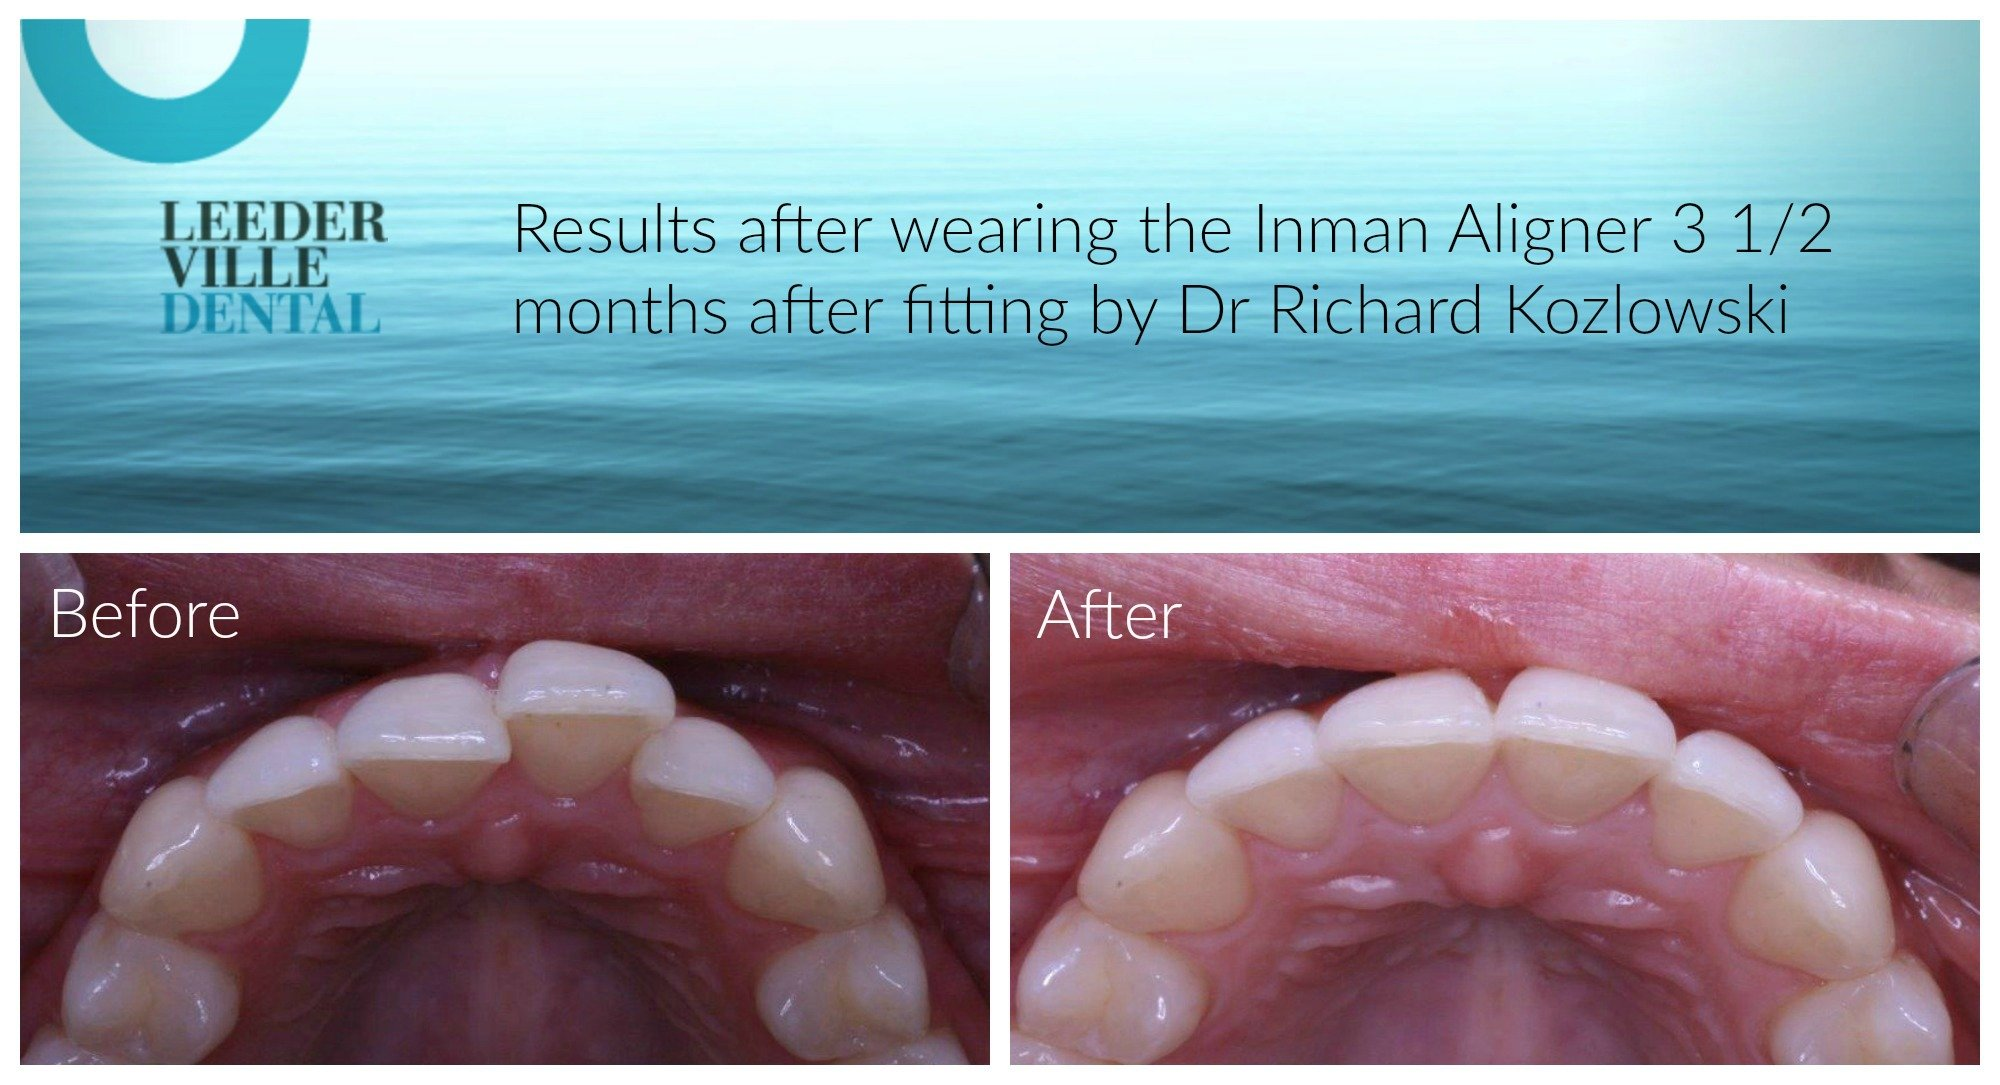 inman aligner results in 3 months